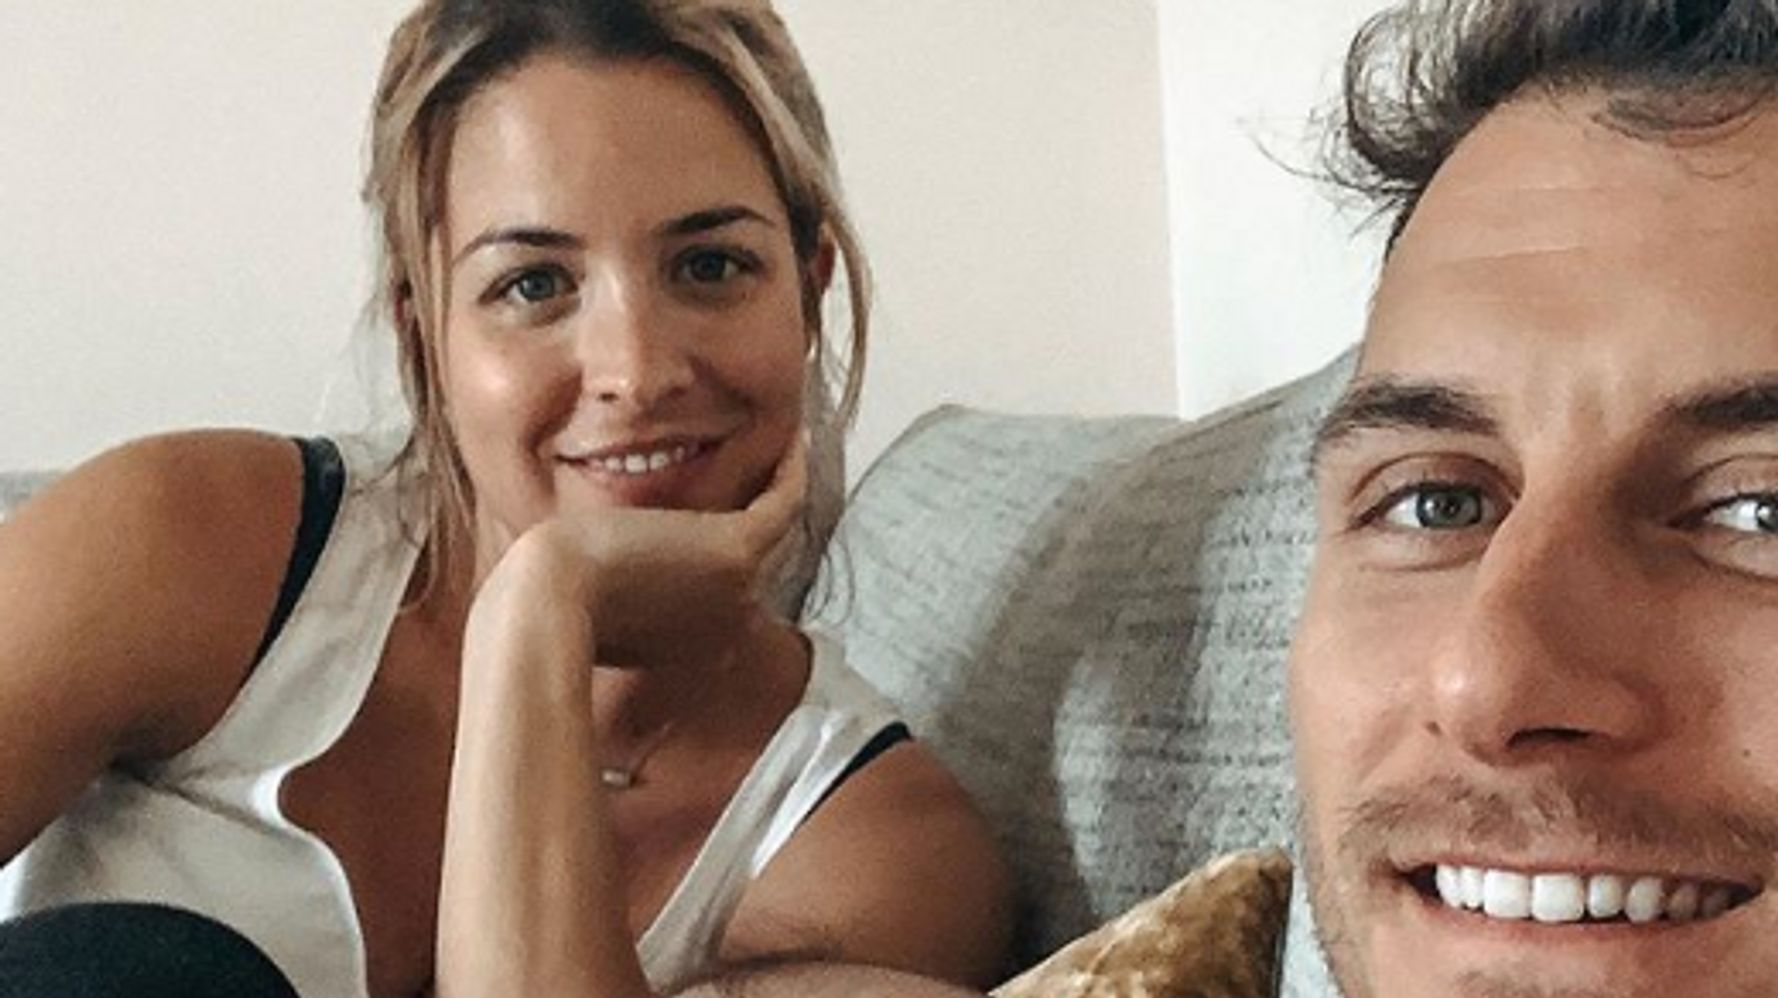 Gemma Atkinson And Gorka Marquez Have First 'Date Night' Post-Baby – We've All Been There